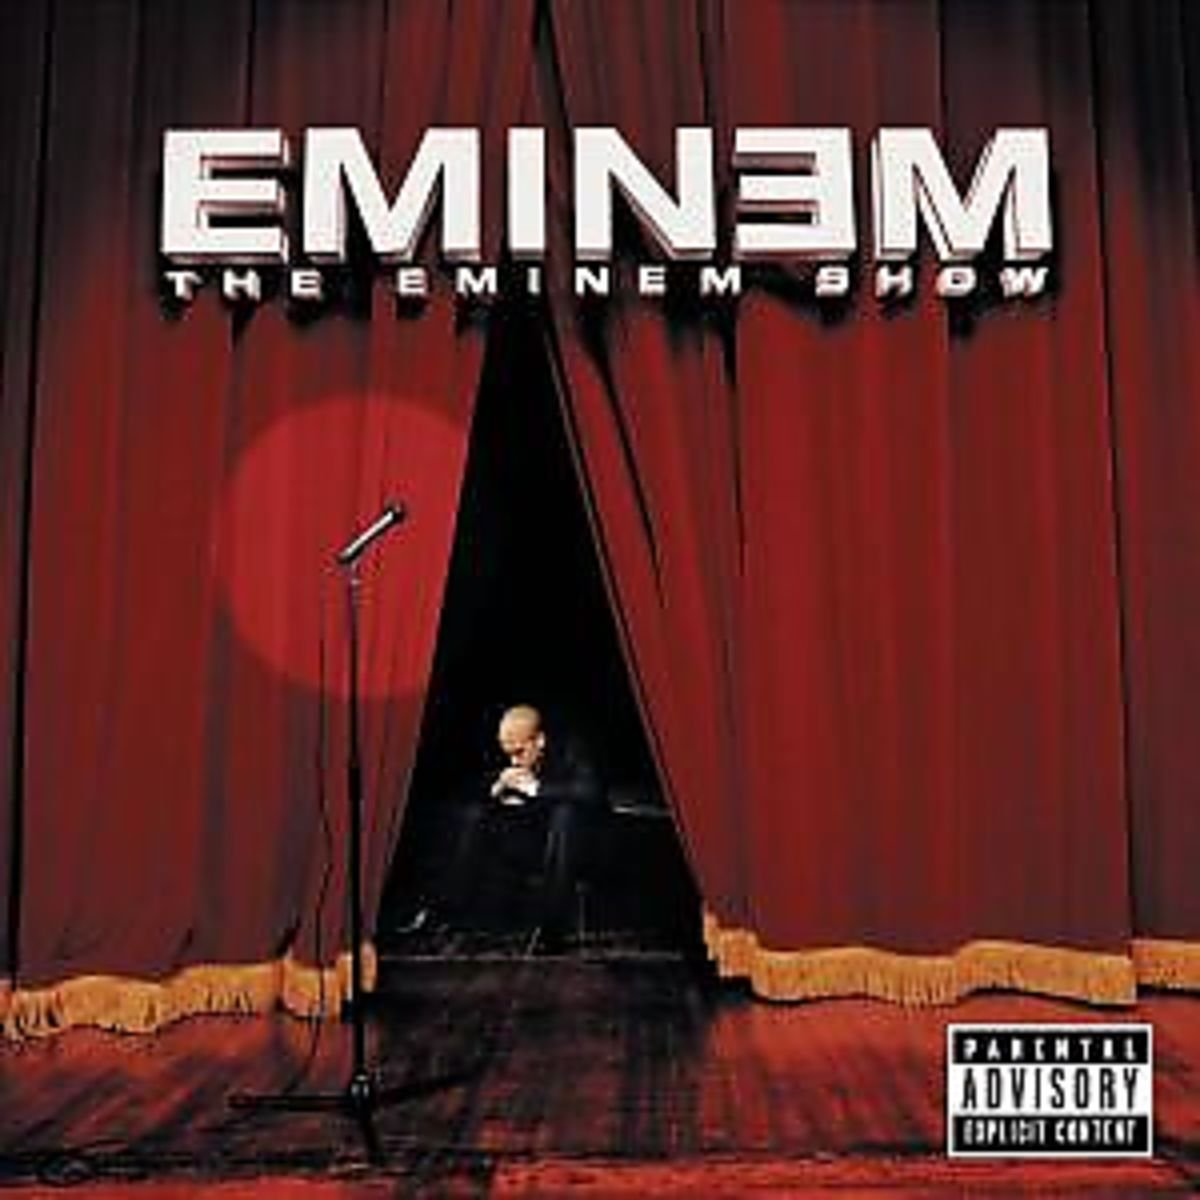 The Eminem Show by Shady Records